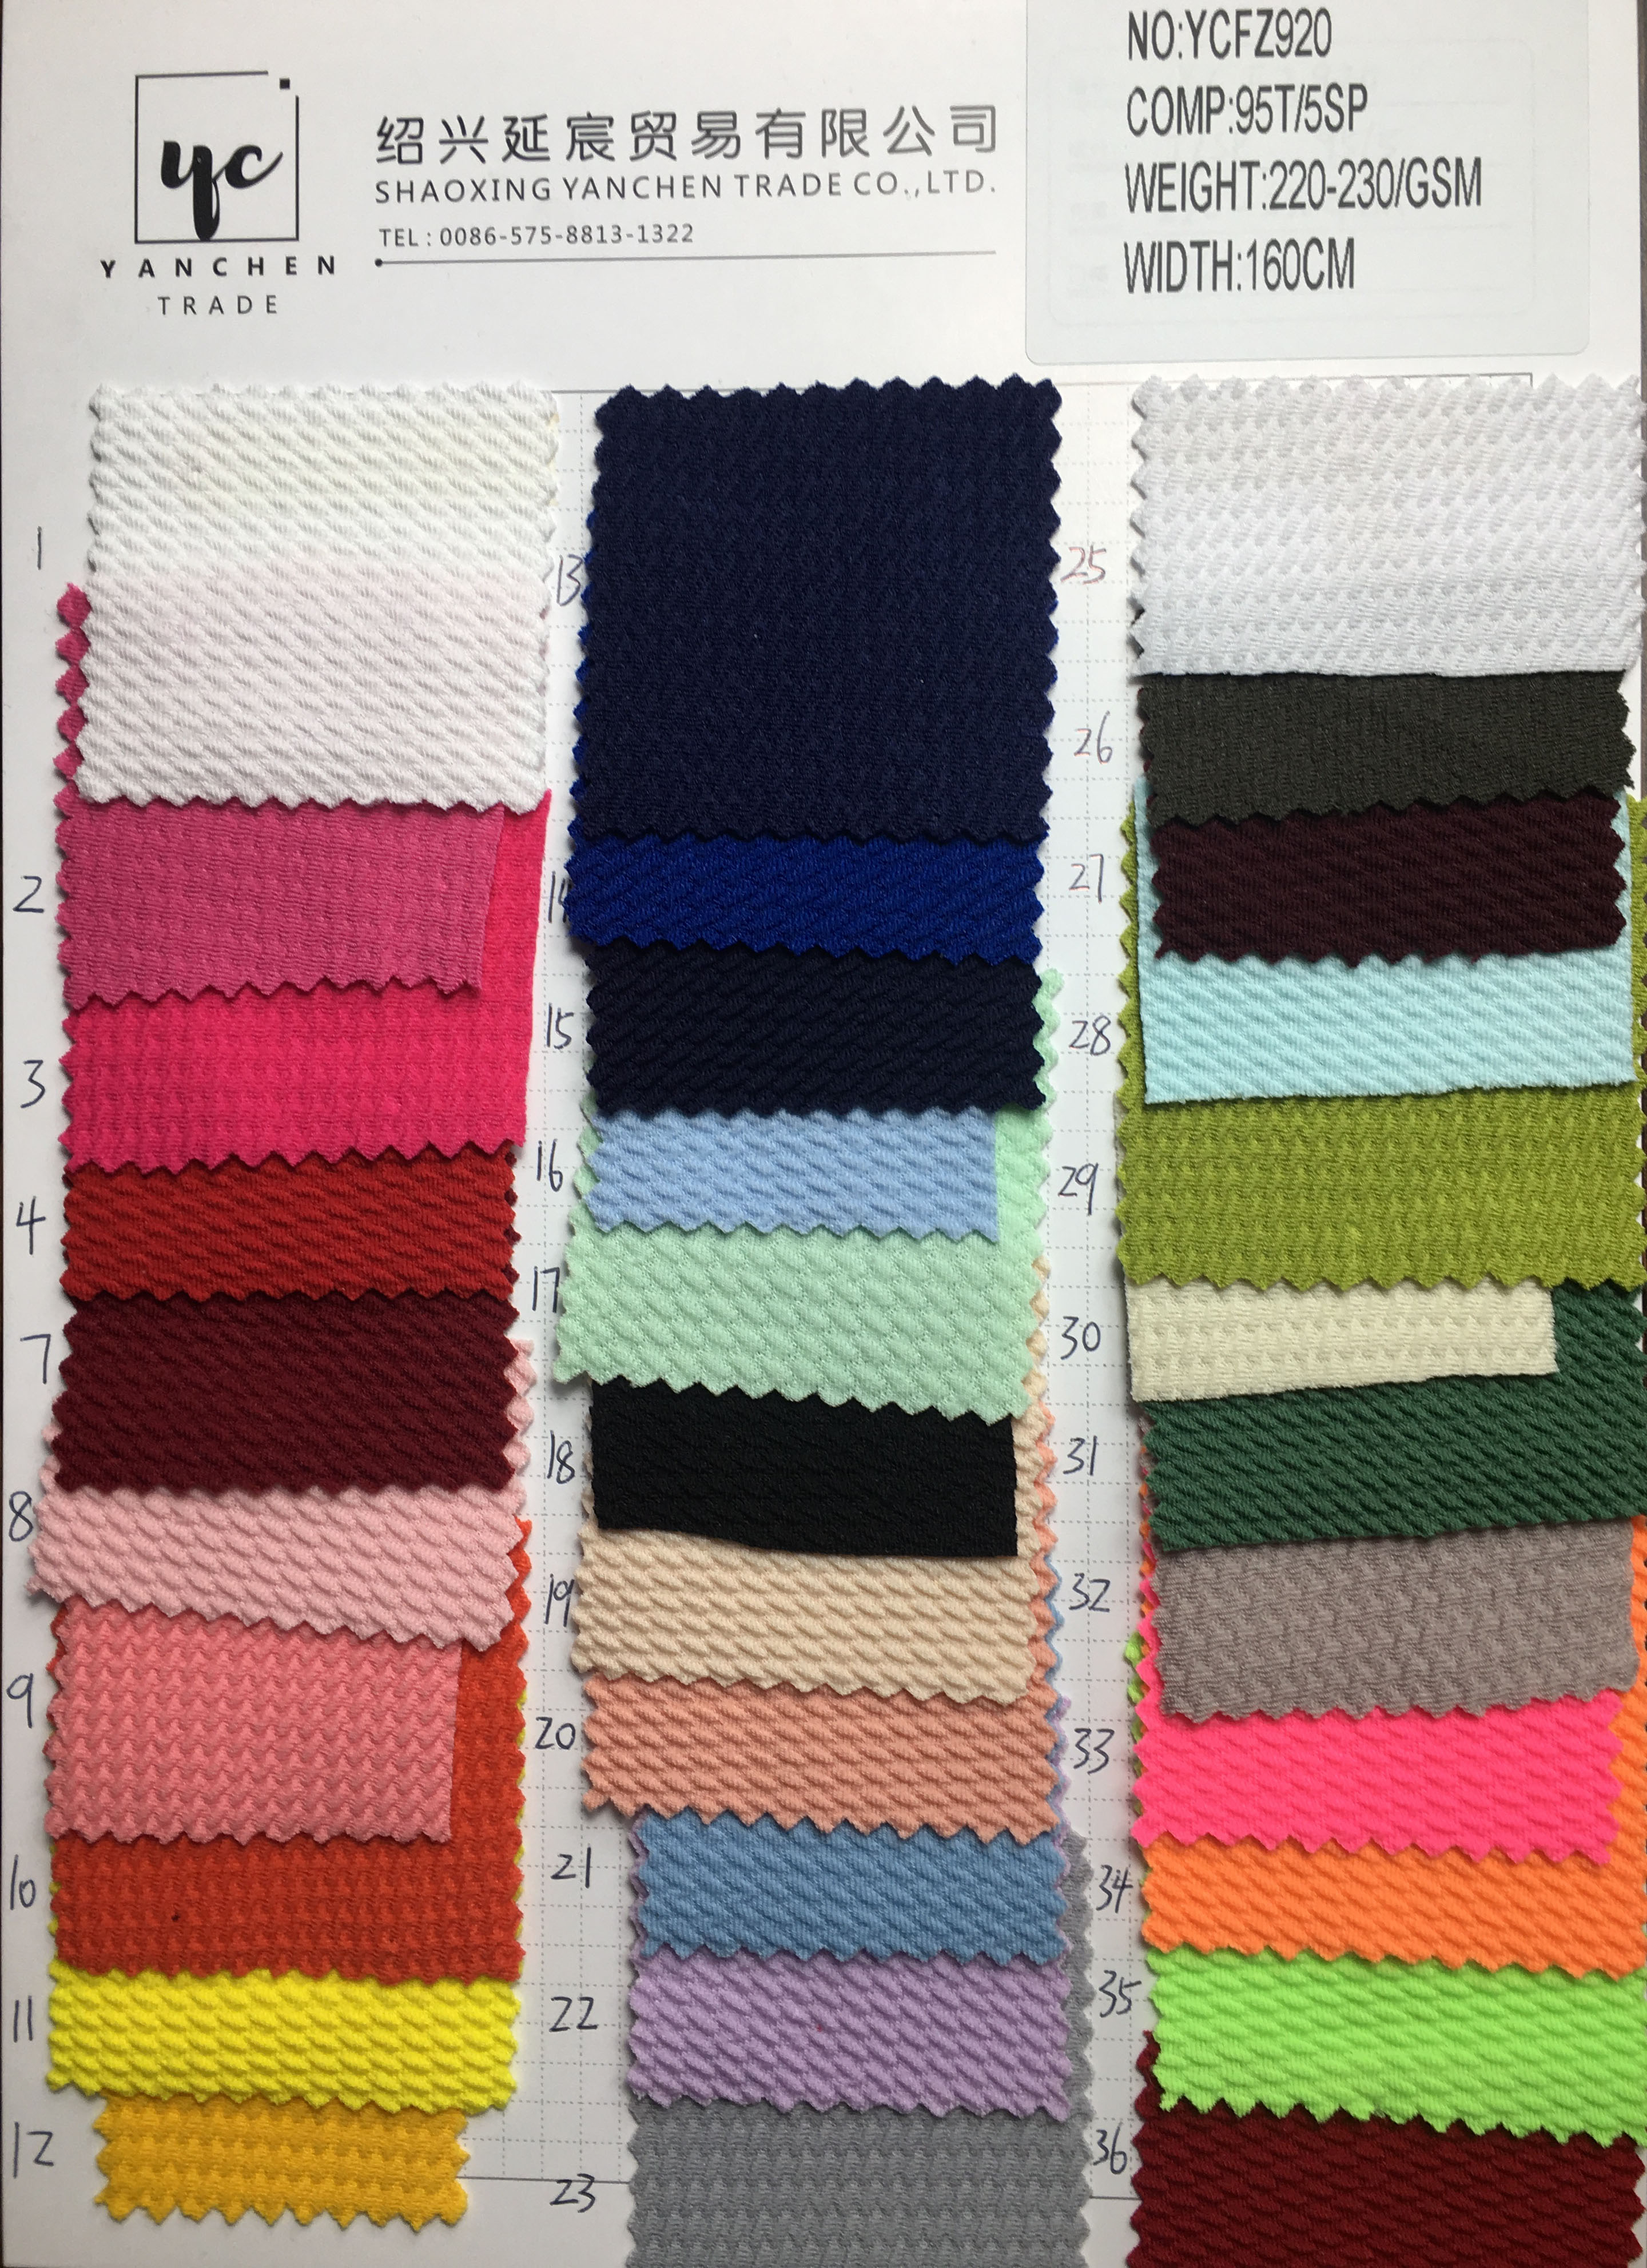 In stock bullet/liverpool texture fabric knit solid colors jacquard for baby headwrap & clothes